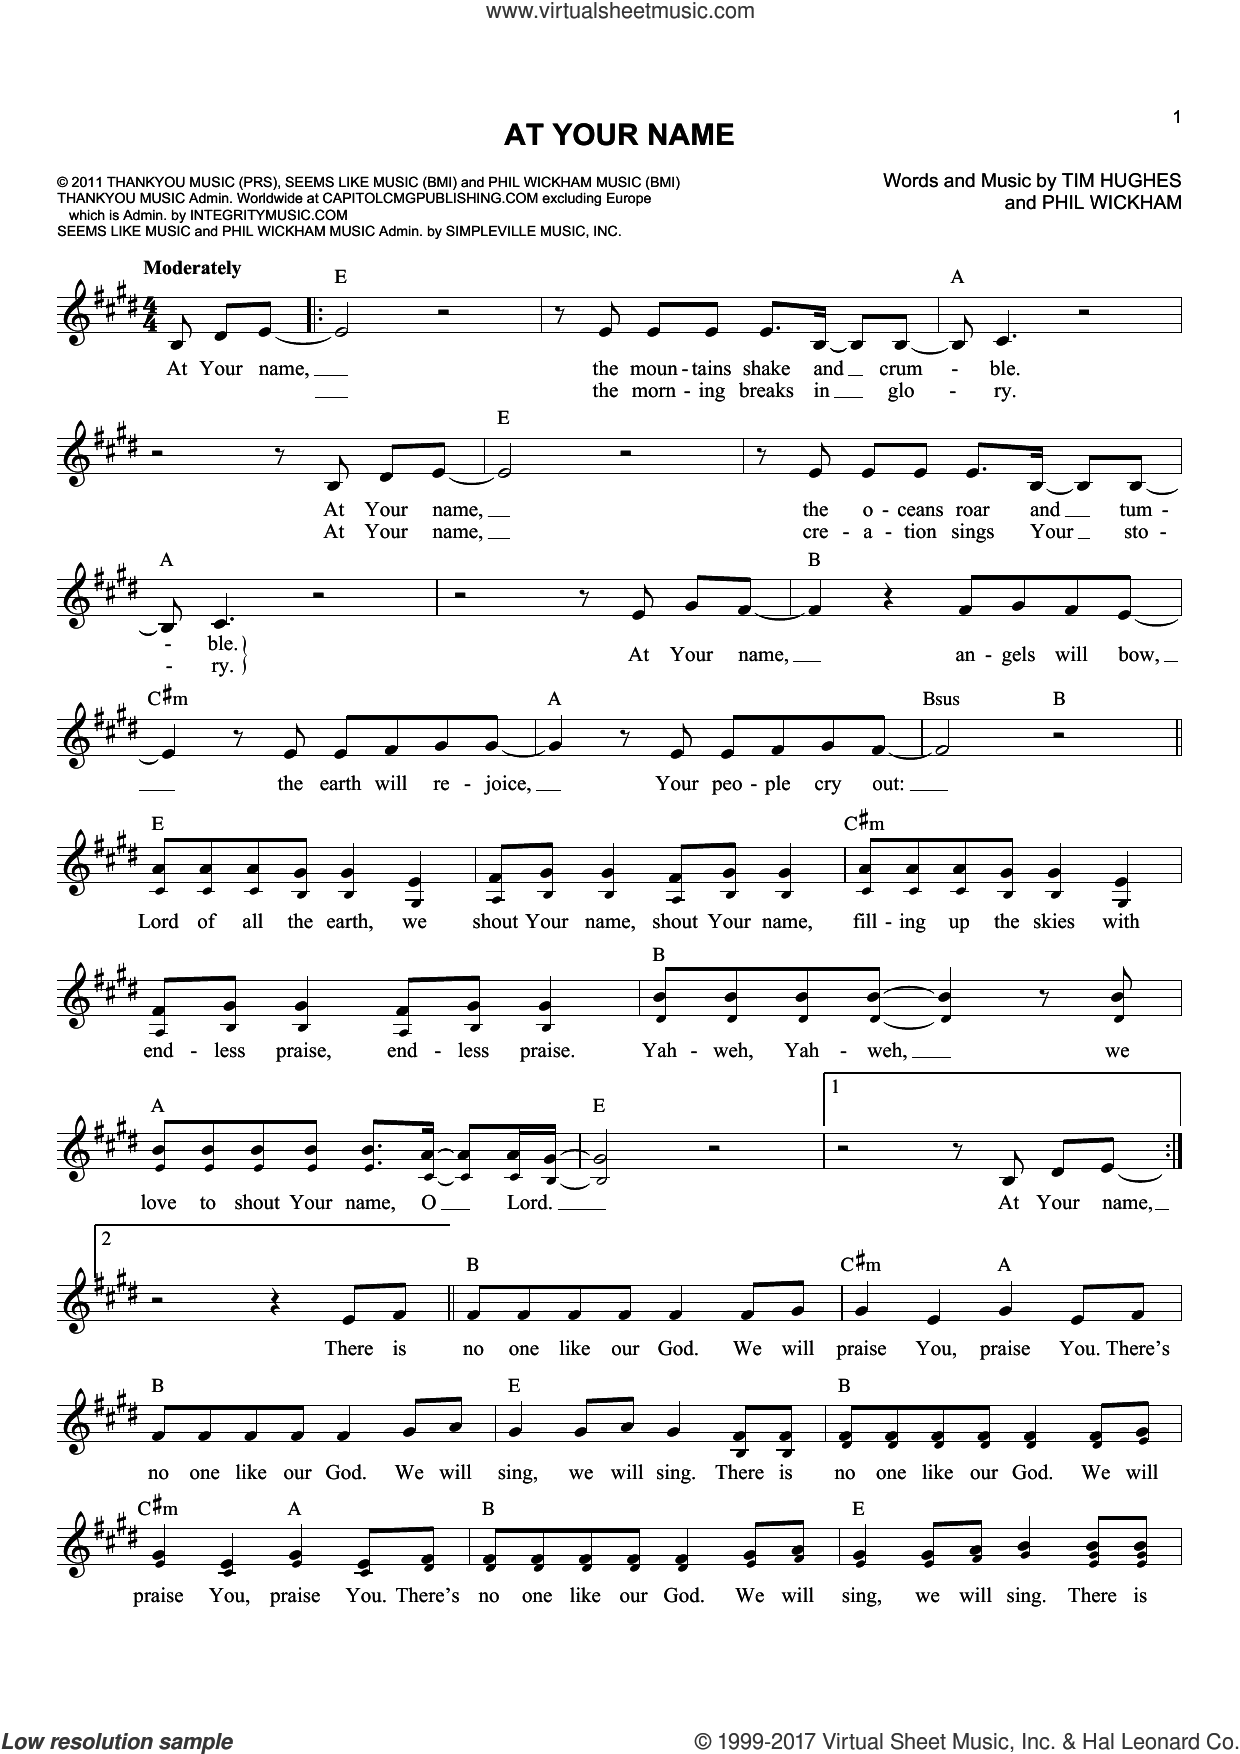 At Your Name sheet music for voice and other instruments (fake book) by Tim Hughes and Phil Wickham, intermediate. Score Image Preview.